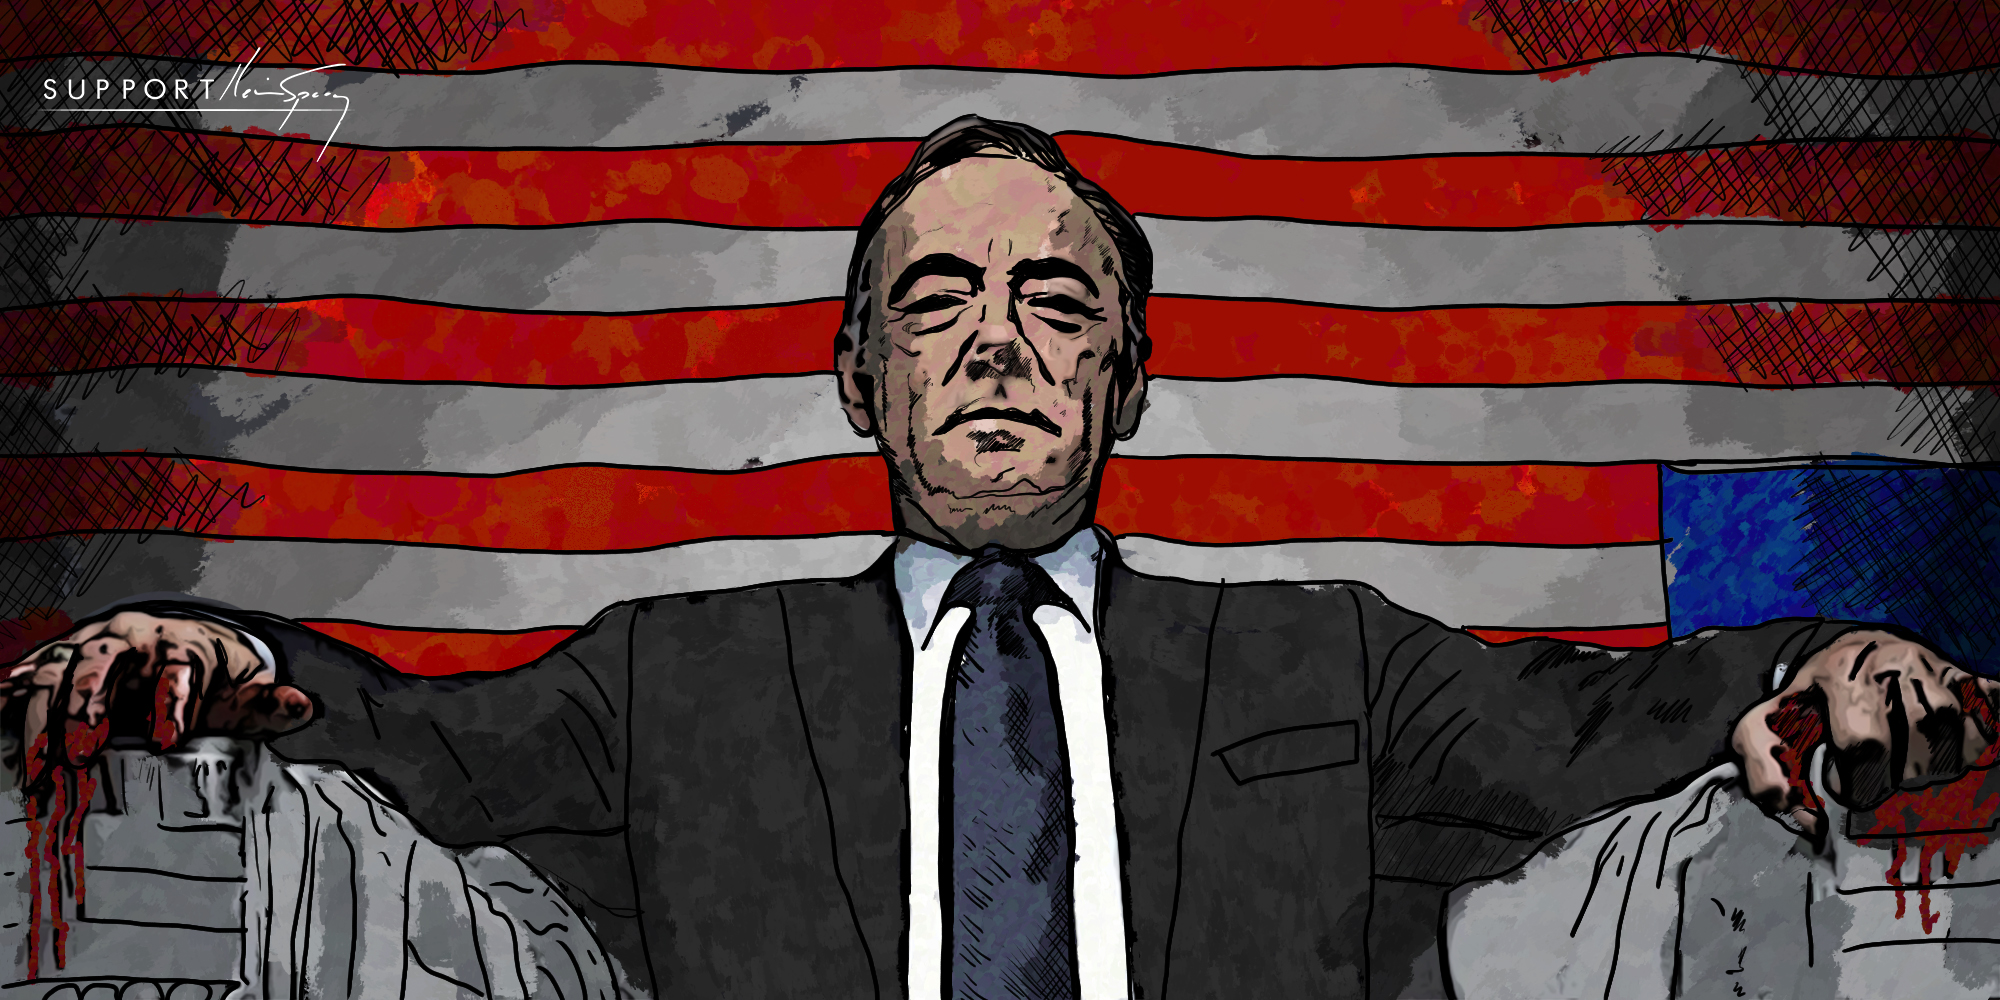 Frank Underwood - Kevin Spacey - SupportKevinSpacey.com